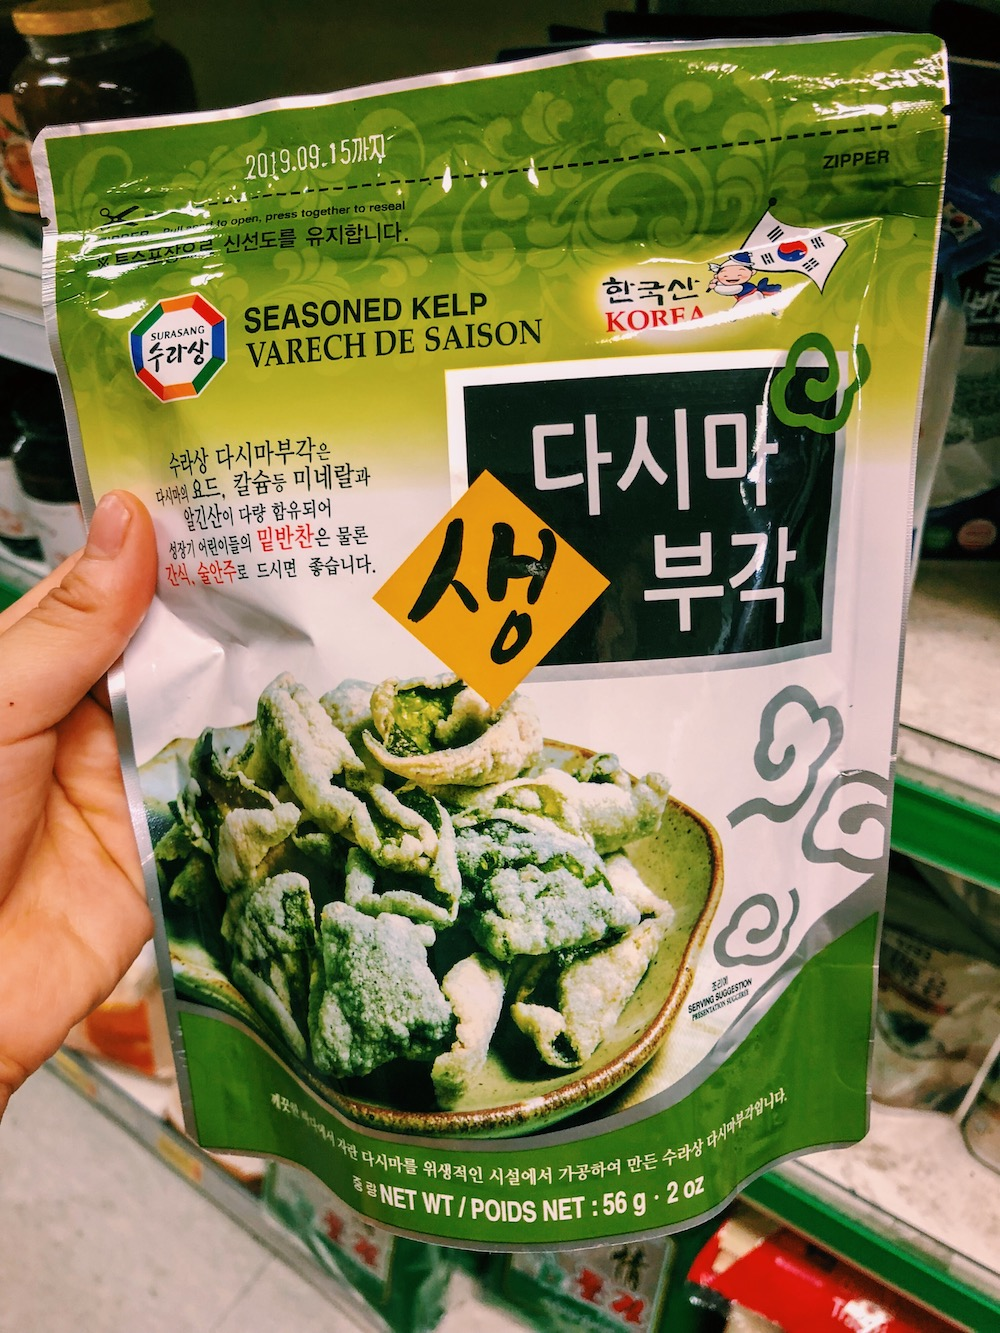 Another seaweed snack!